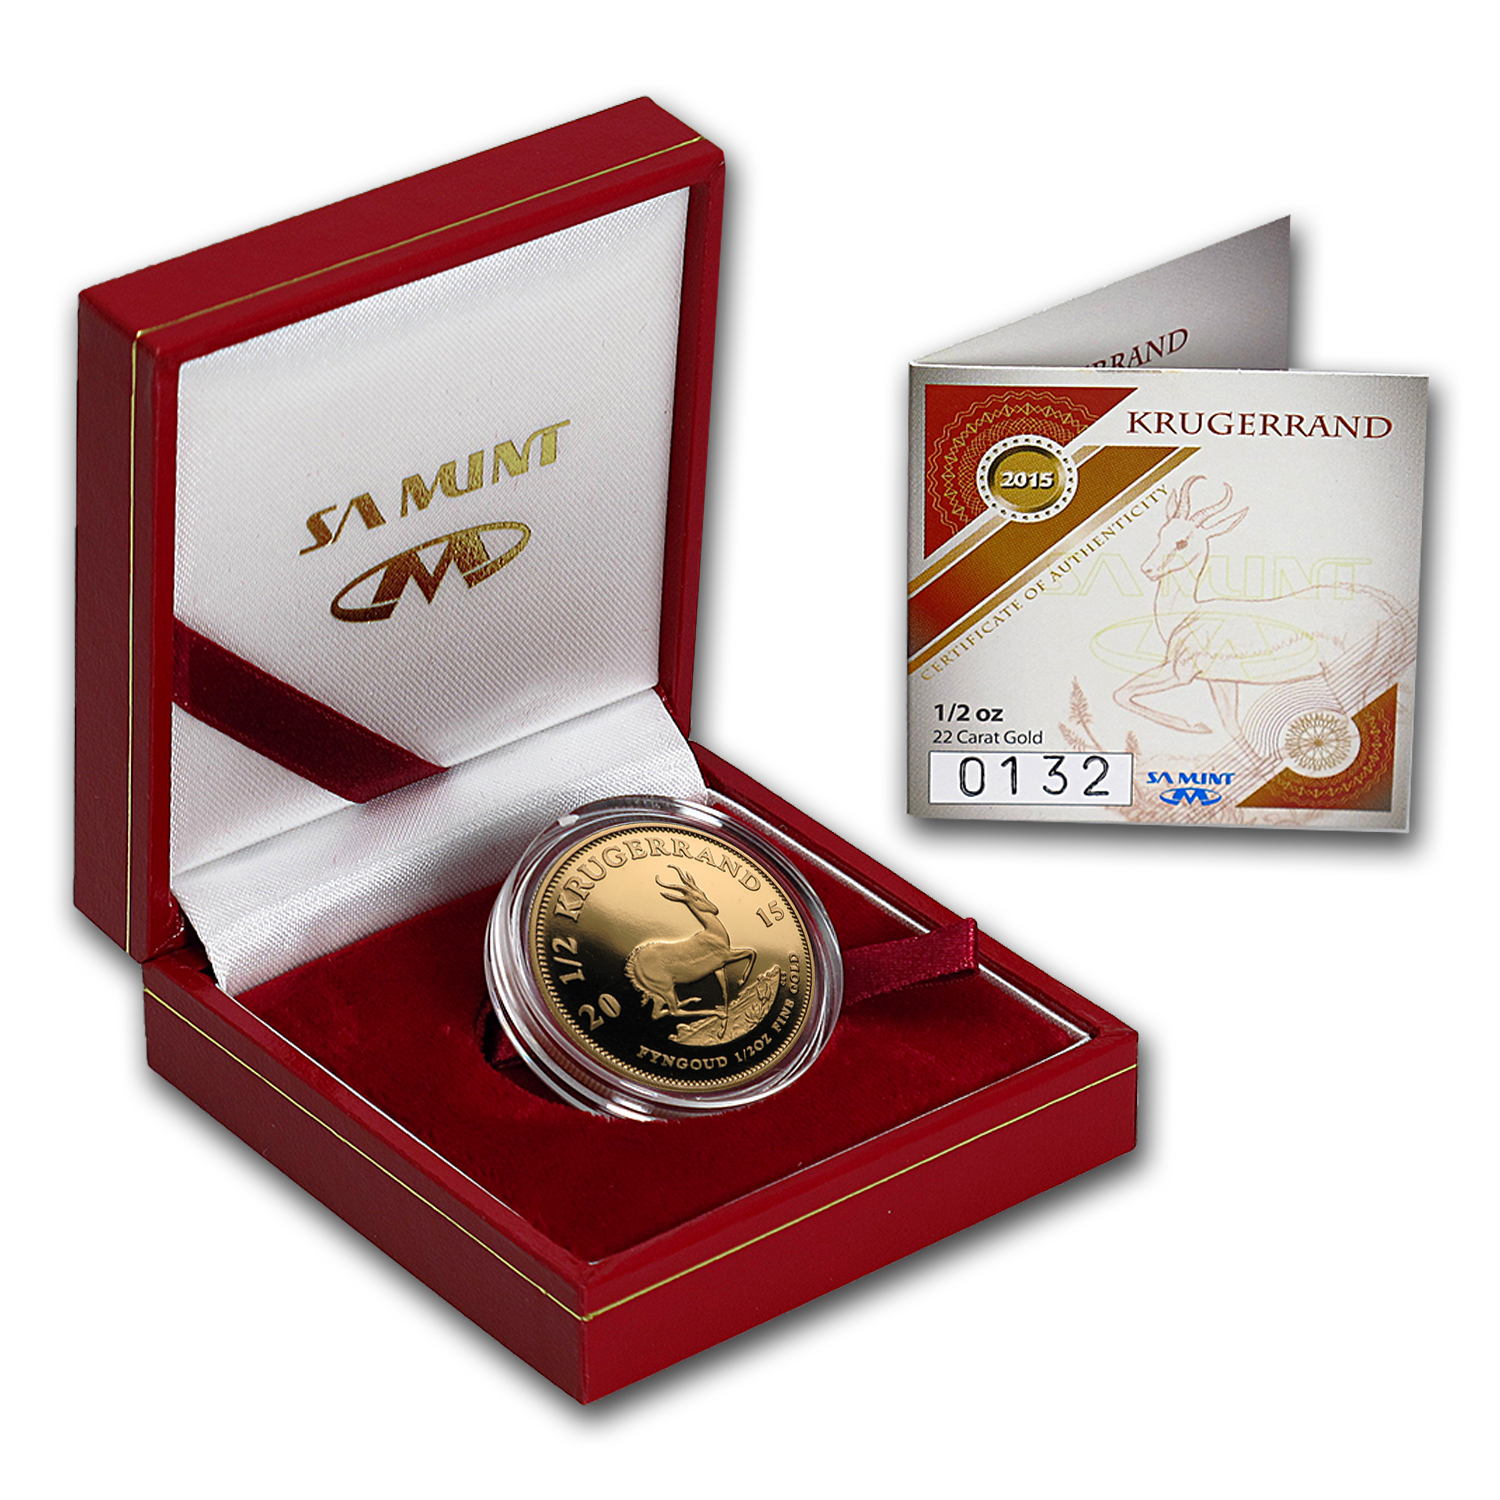 2015 South Africa 1/2 oz Proof Gold Krugerrand